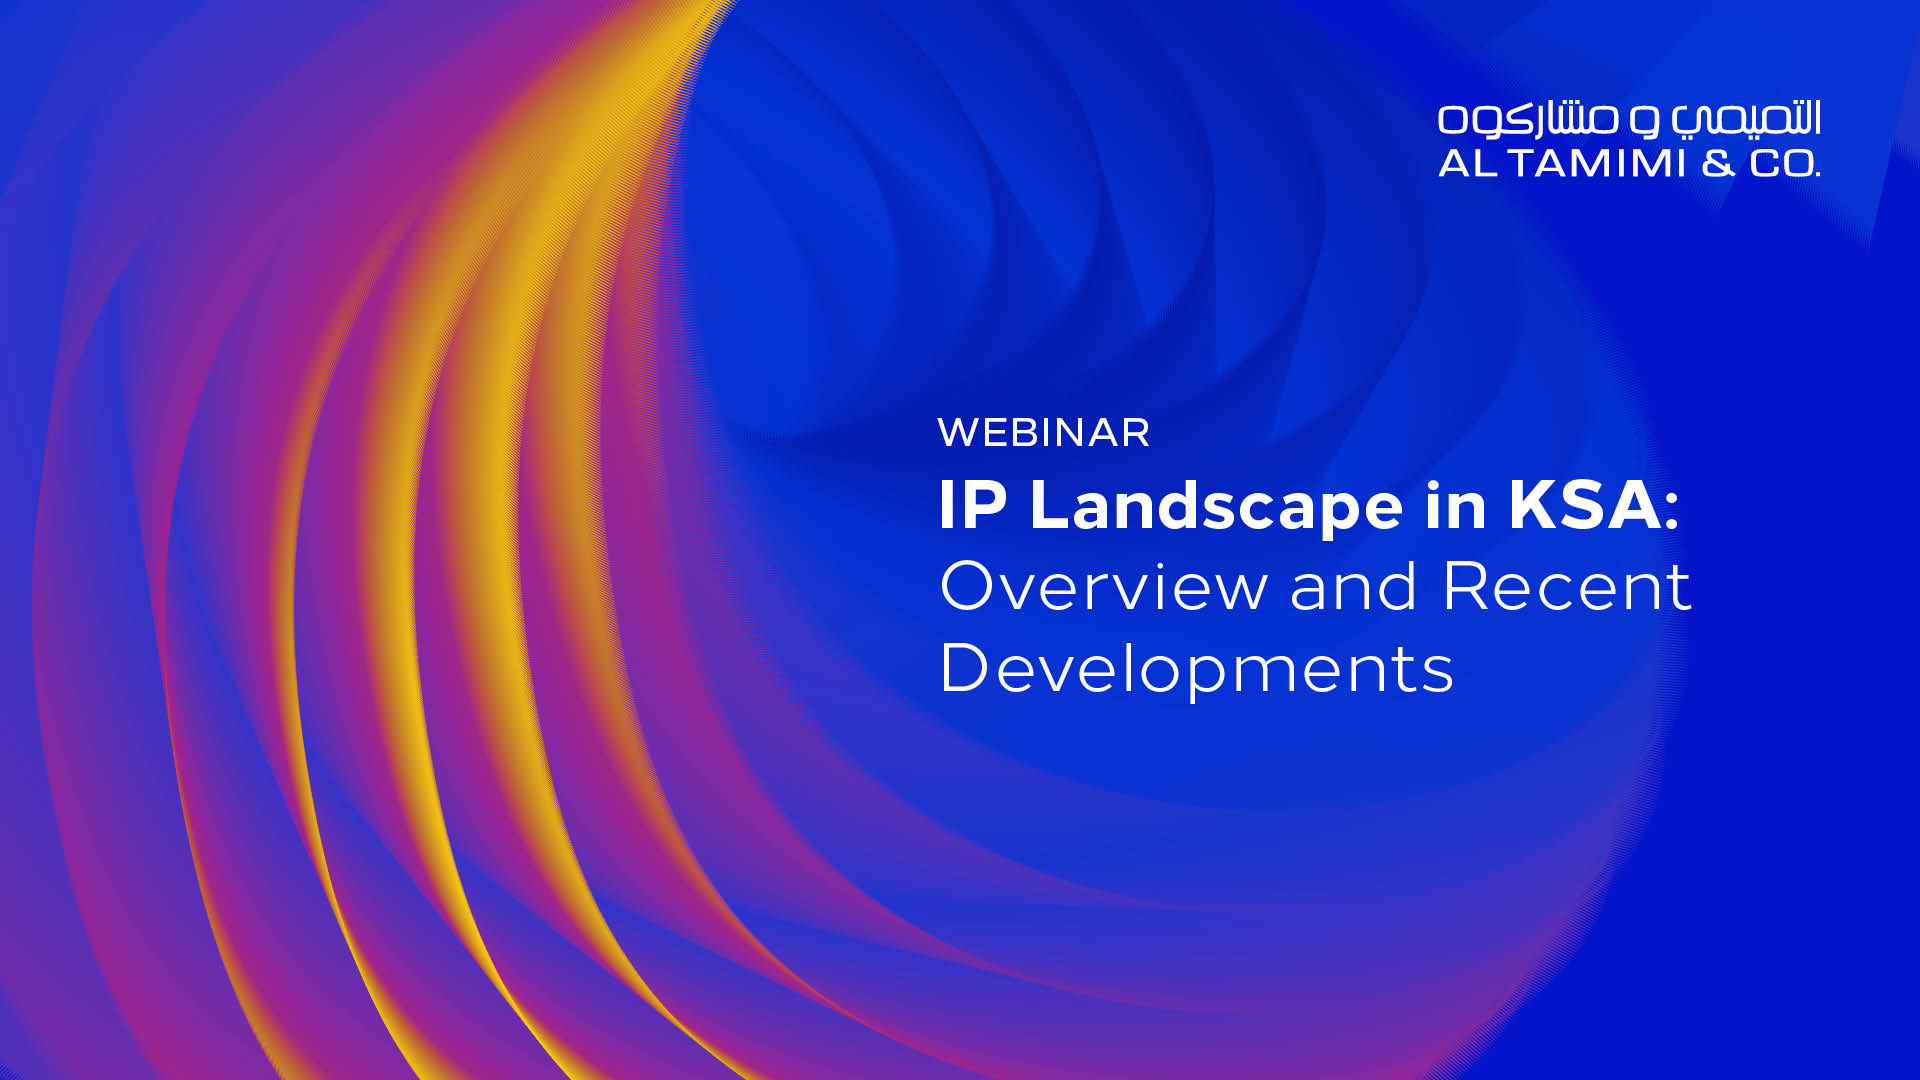 IP Landscape in the KSA: Overview and Recent Developments